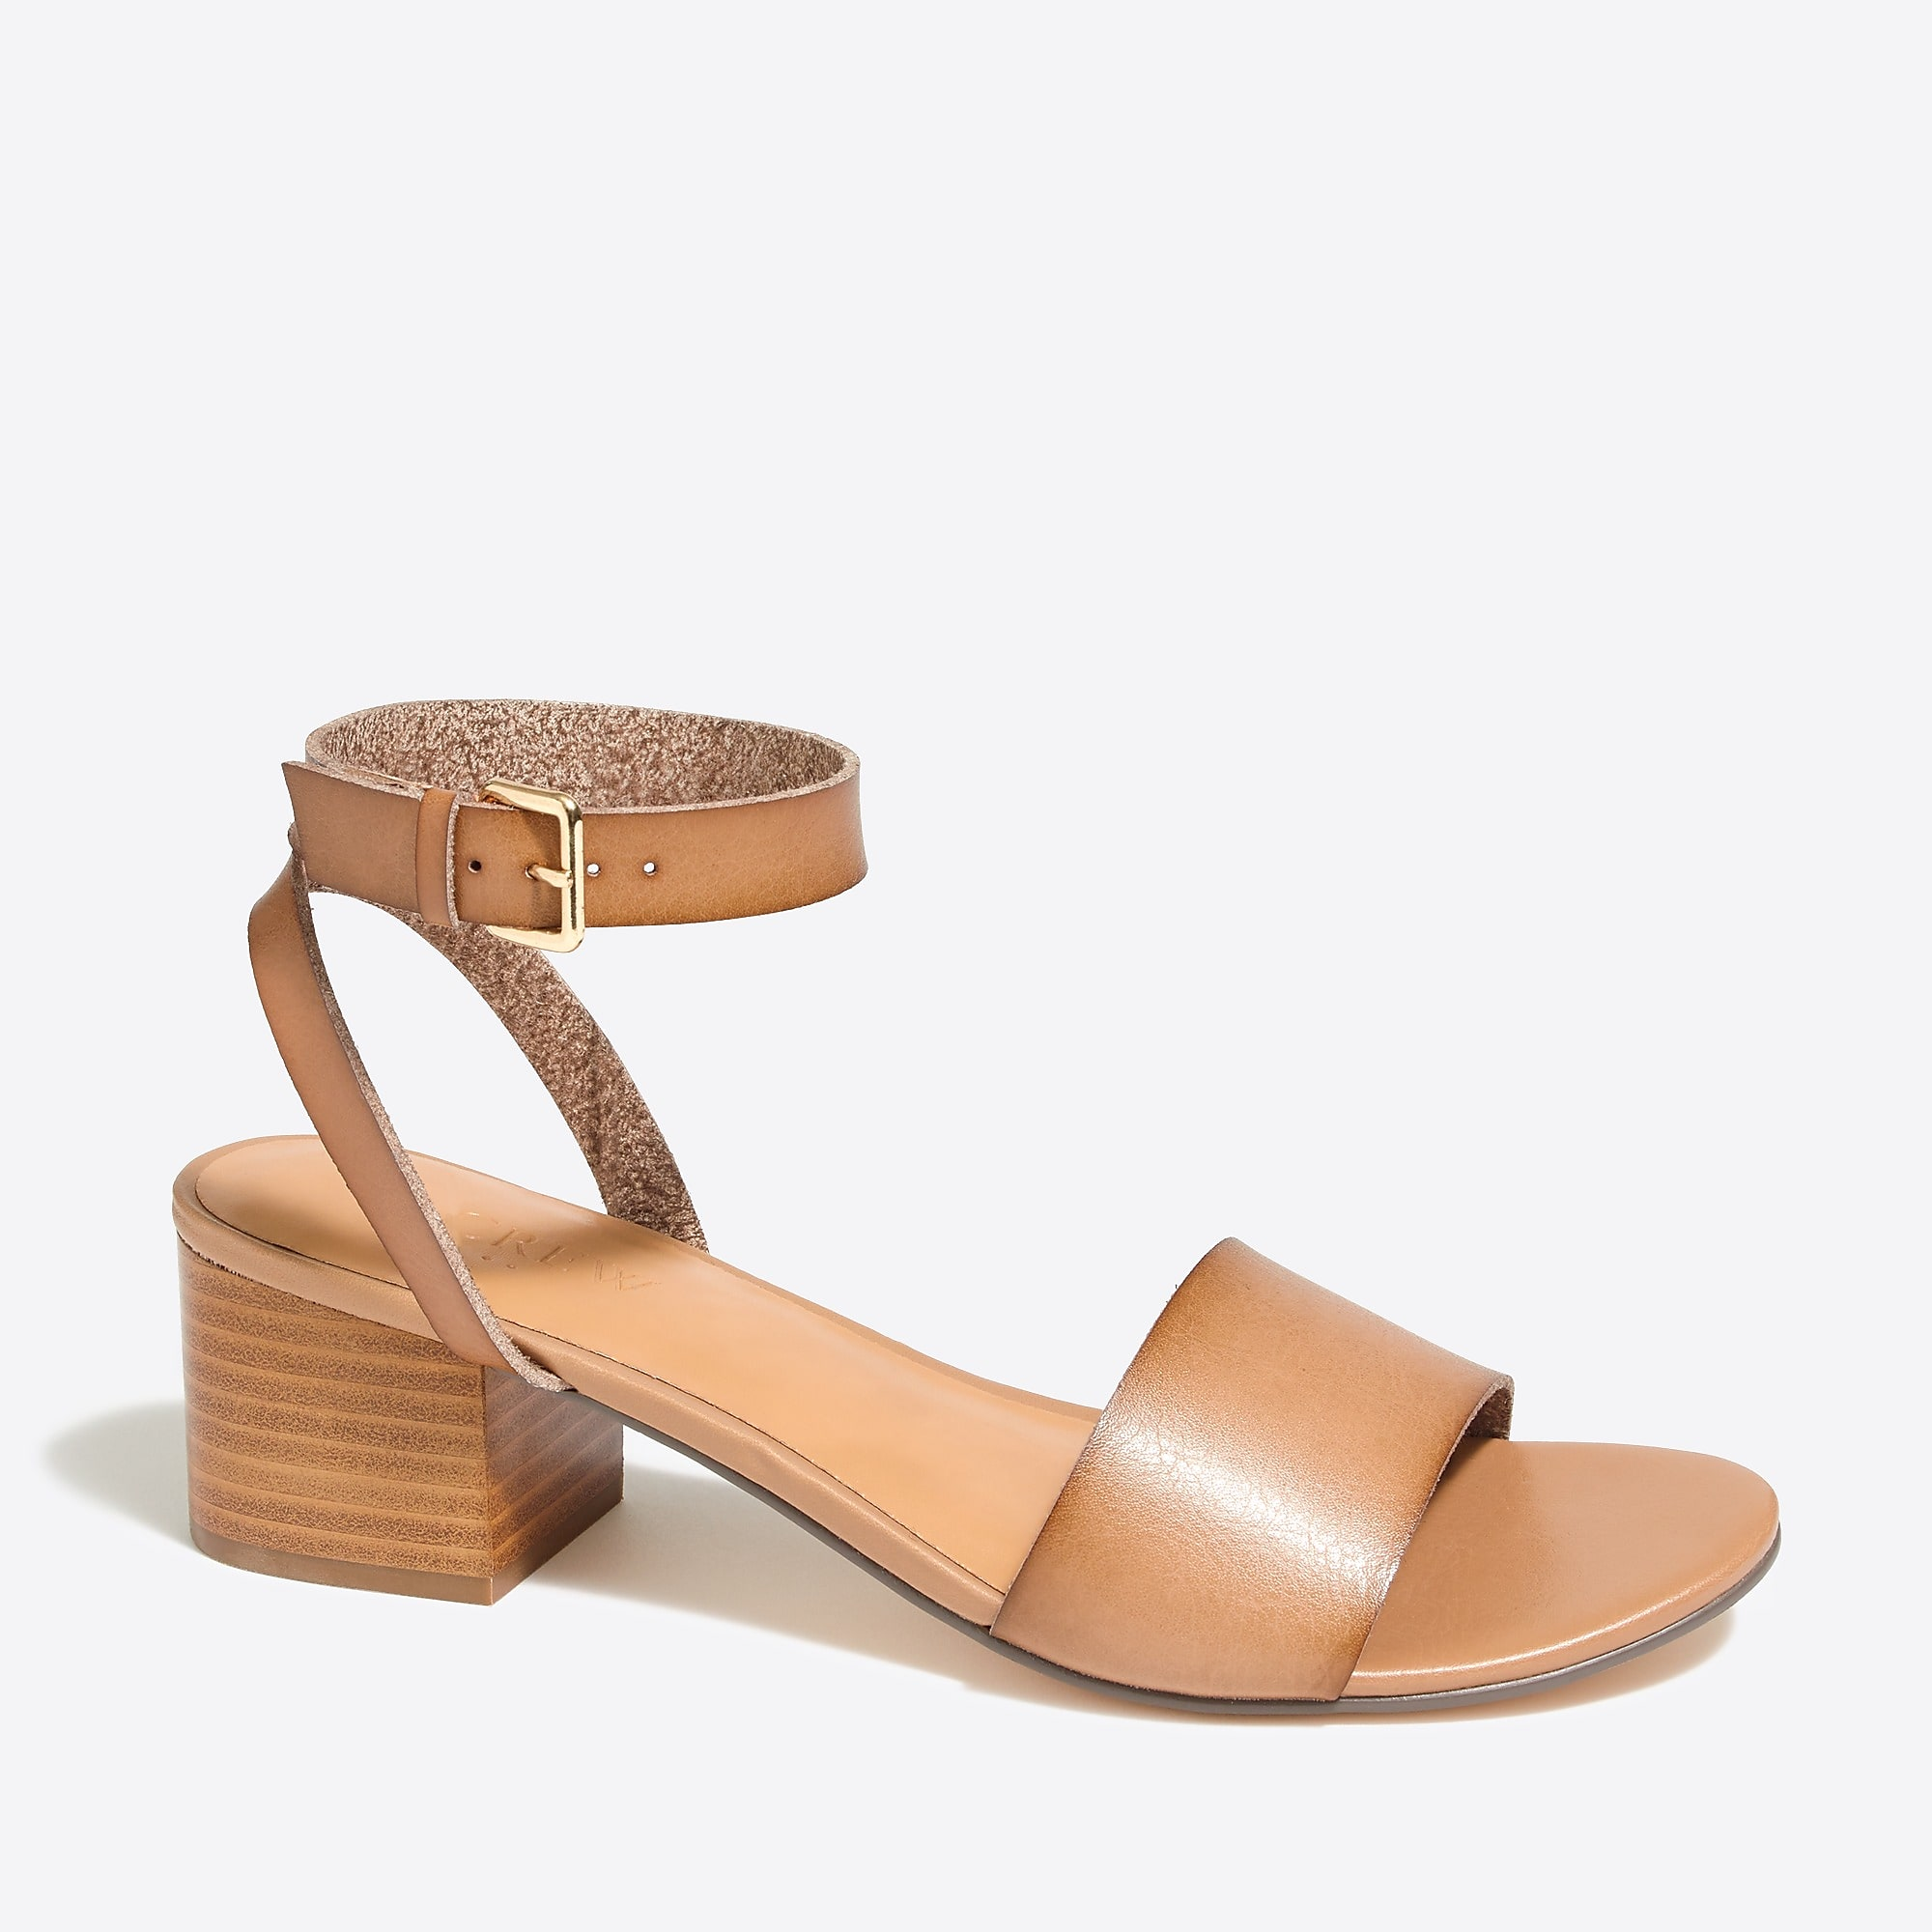 aa20141985e Block-heel sandals : FactoryWomen Heels | Factory